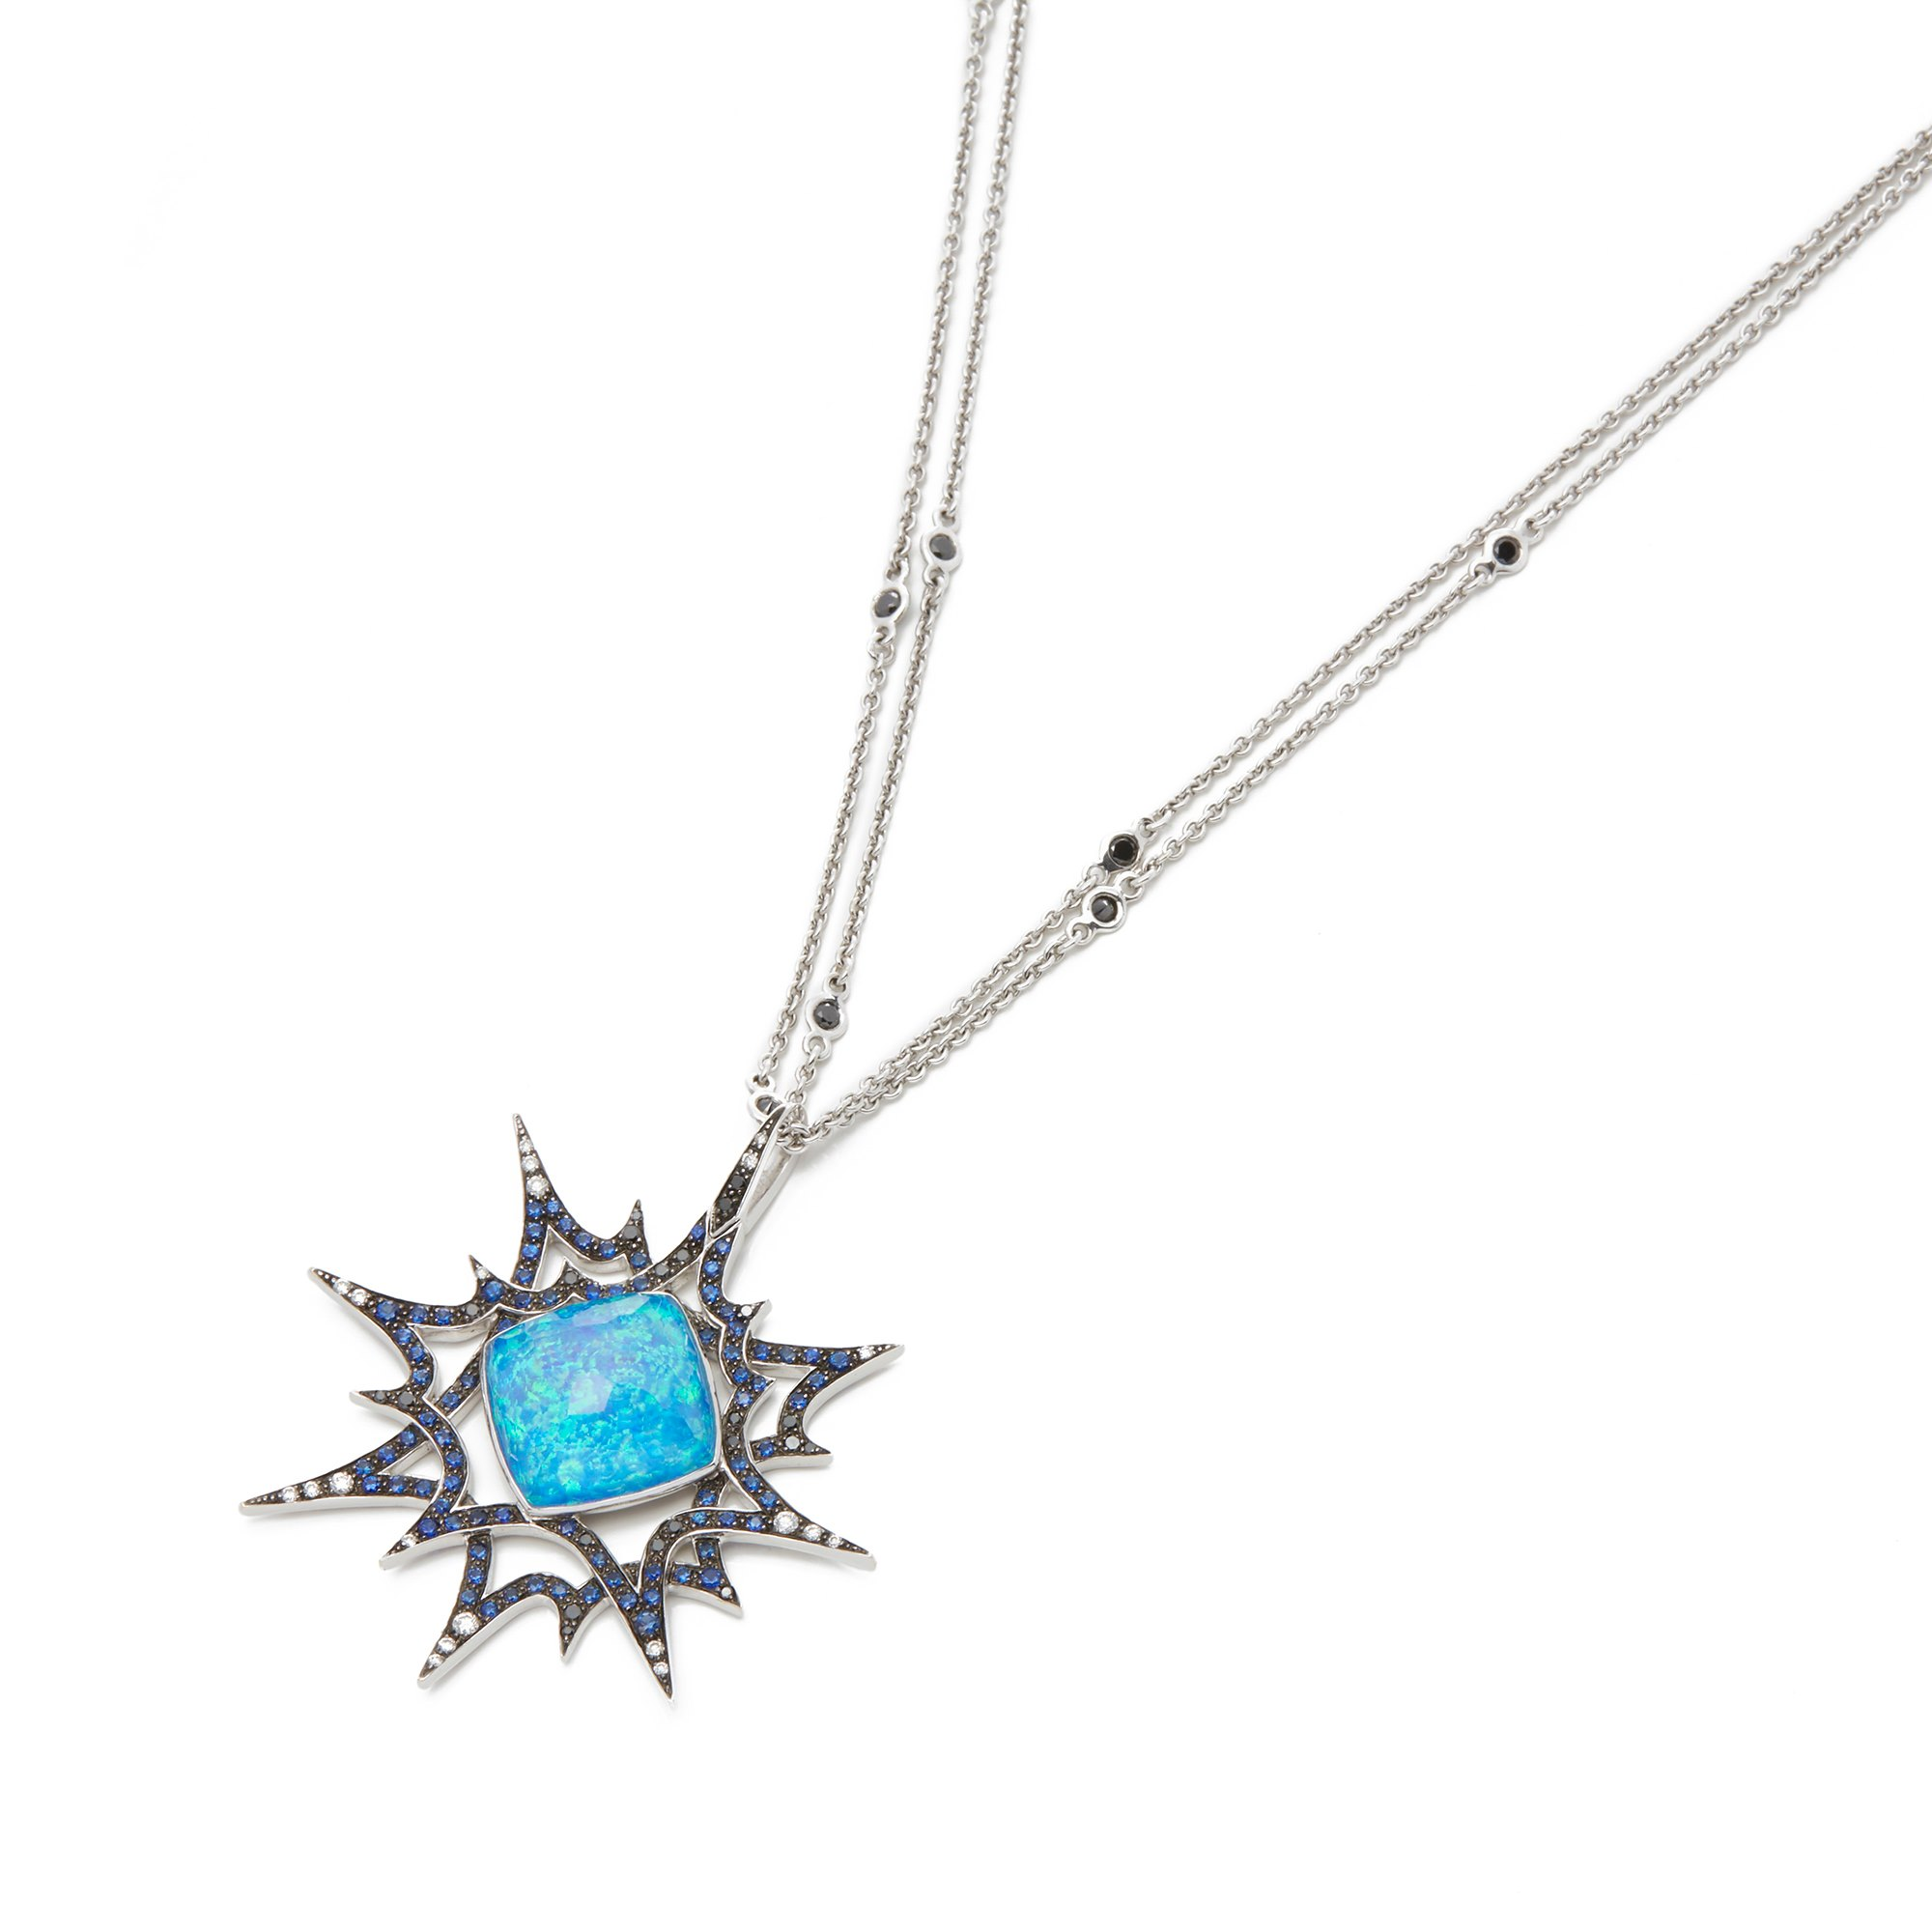 Stephen Webster Murder She Wrote 18ct White Gold Black Opal Crystal Haze Necklace